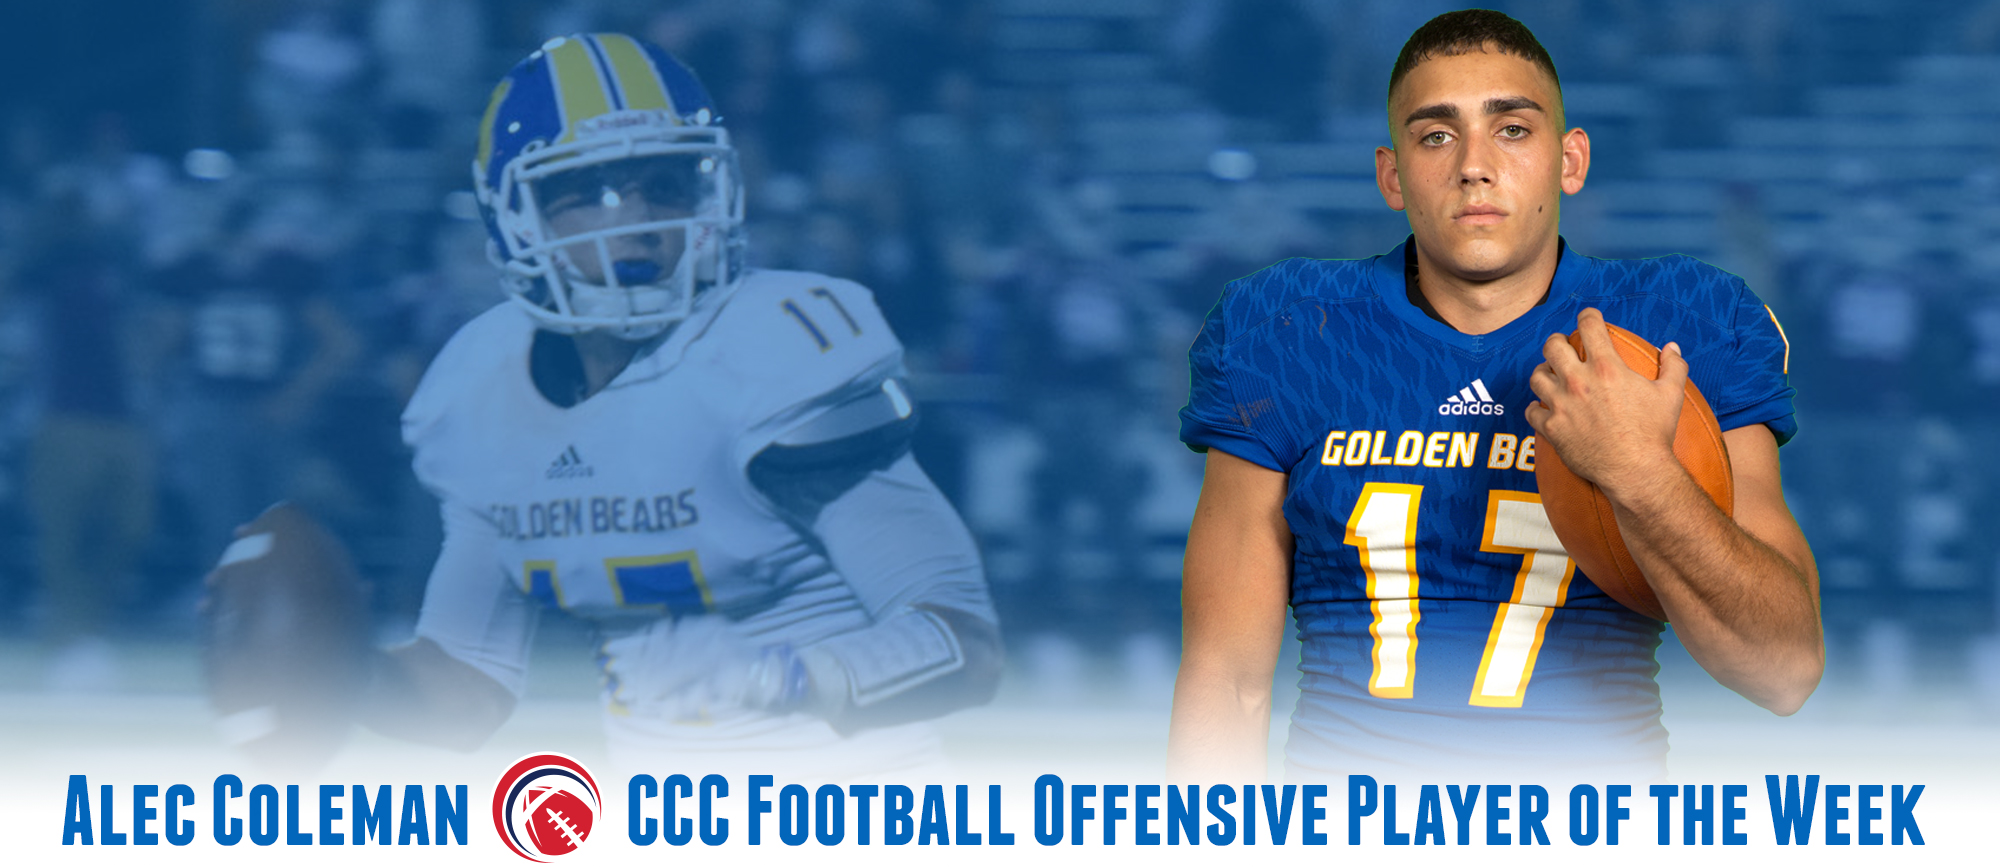 Alec Coleman Earns First CCC Football Offensive Player of the Week Award